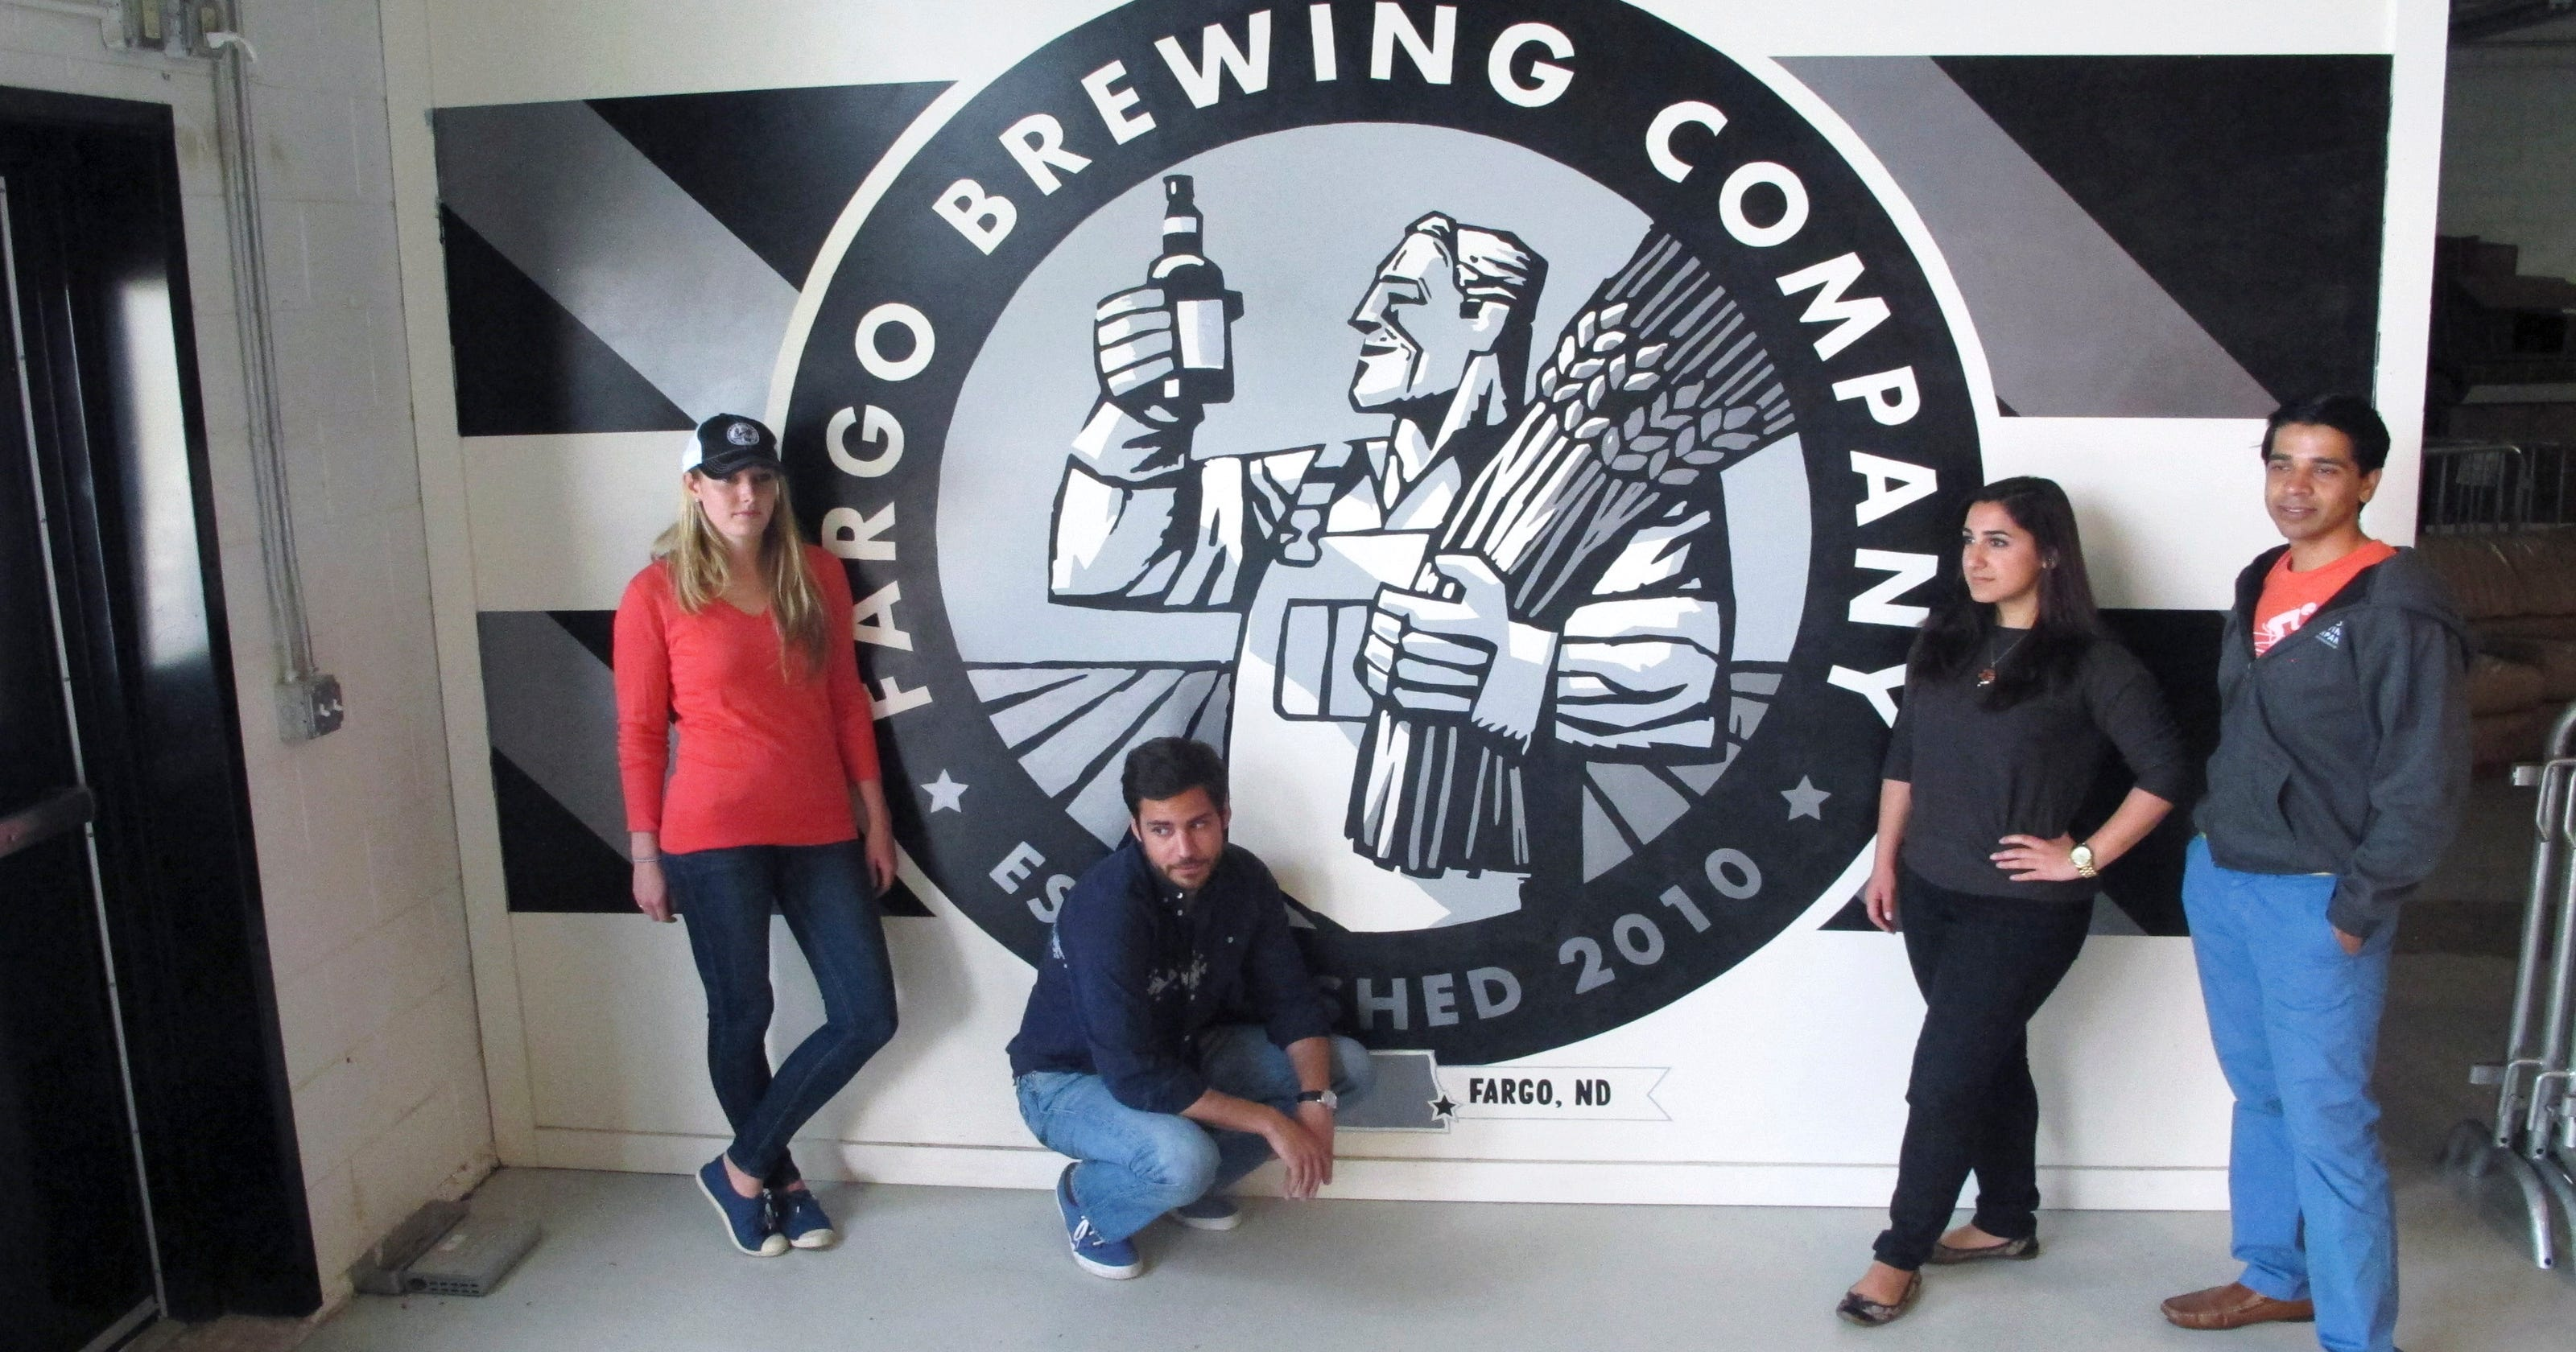 Students From Columbia University Research Craft Beer Business